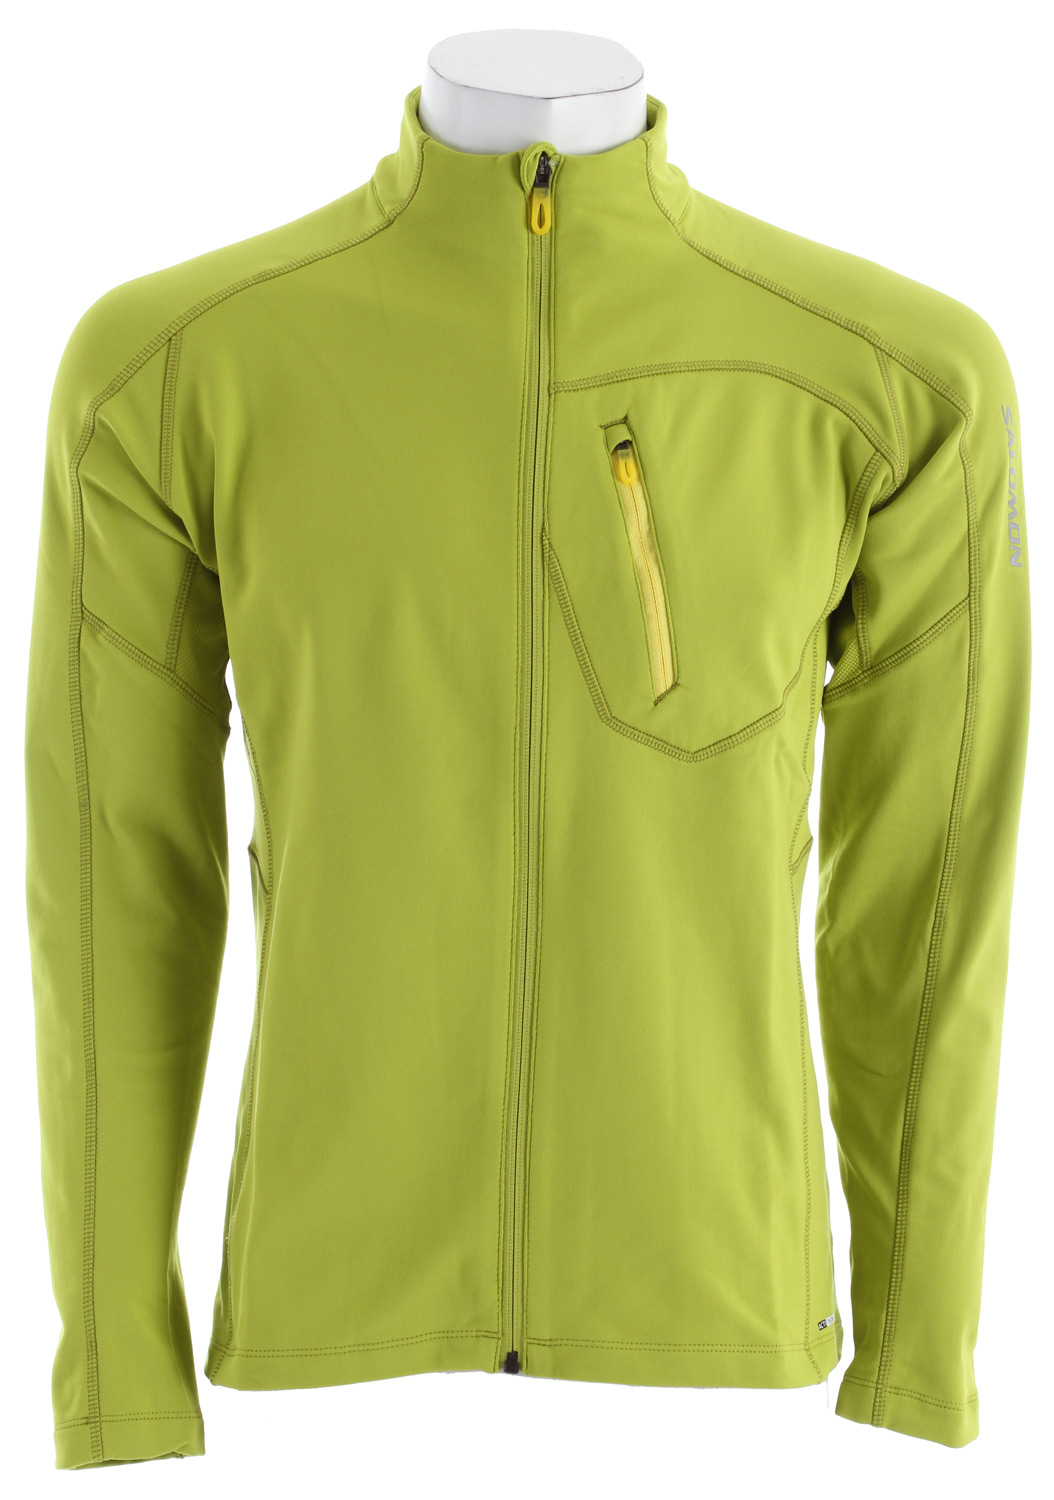 Camp and Hike Ultra soft, breathable, fitted midlayer provides a little extra warmth for aerobic sports.Key Features of the Salomon XA Midlayer Top: Smart Skin Actitherm mid jersey 1 chest pocket Reflective branding Insert: PES 91% EL 9% Body: PES 87% EL 13% Active Fit 400g - $54.95